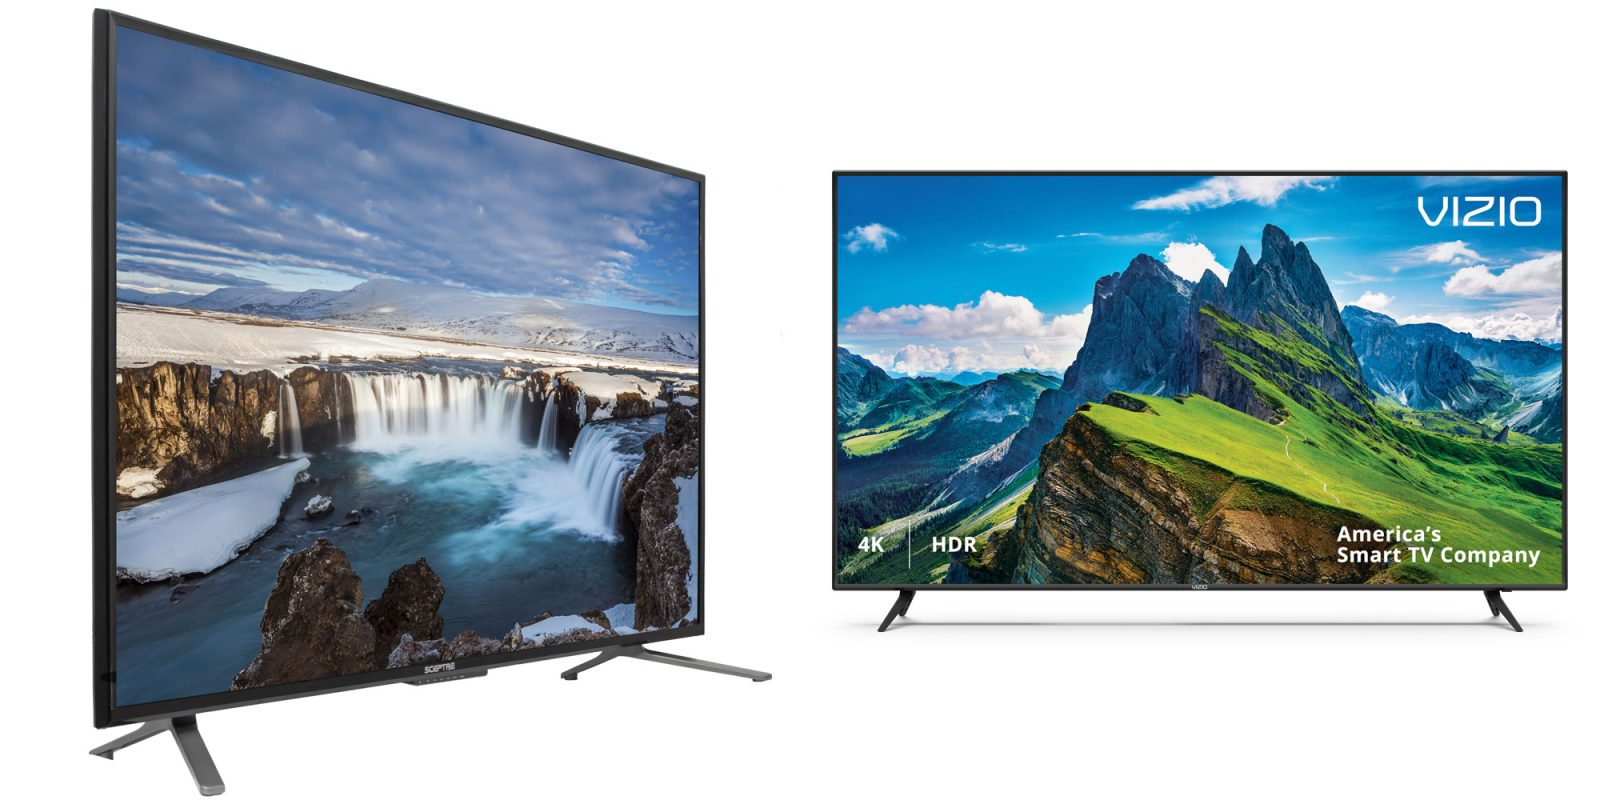 Upgrade your home theater w/ a 55-inch 4K UHDTV for $220, more